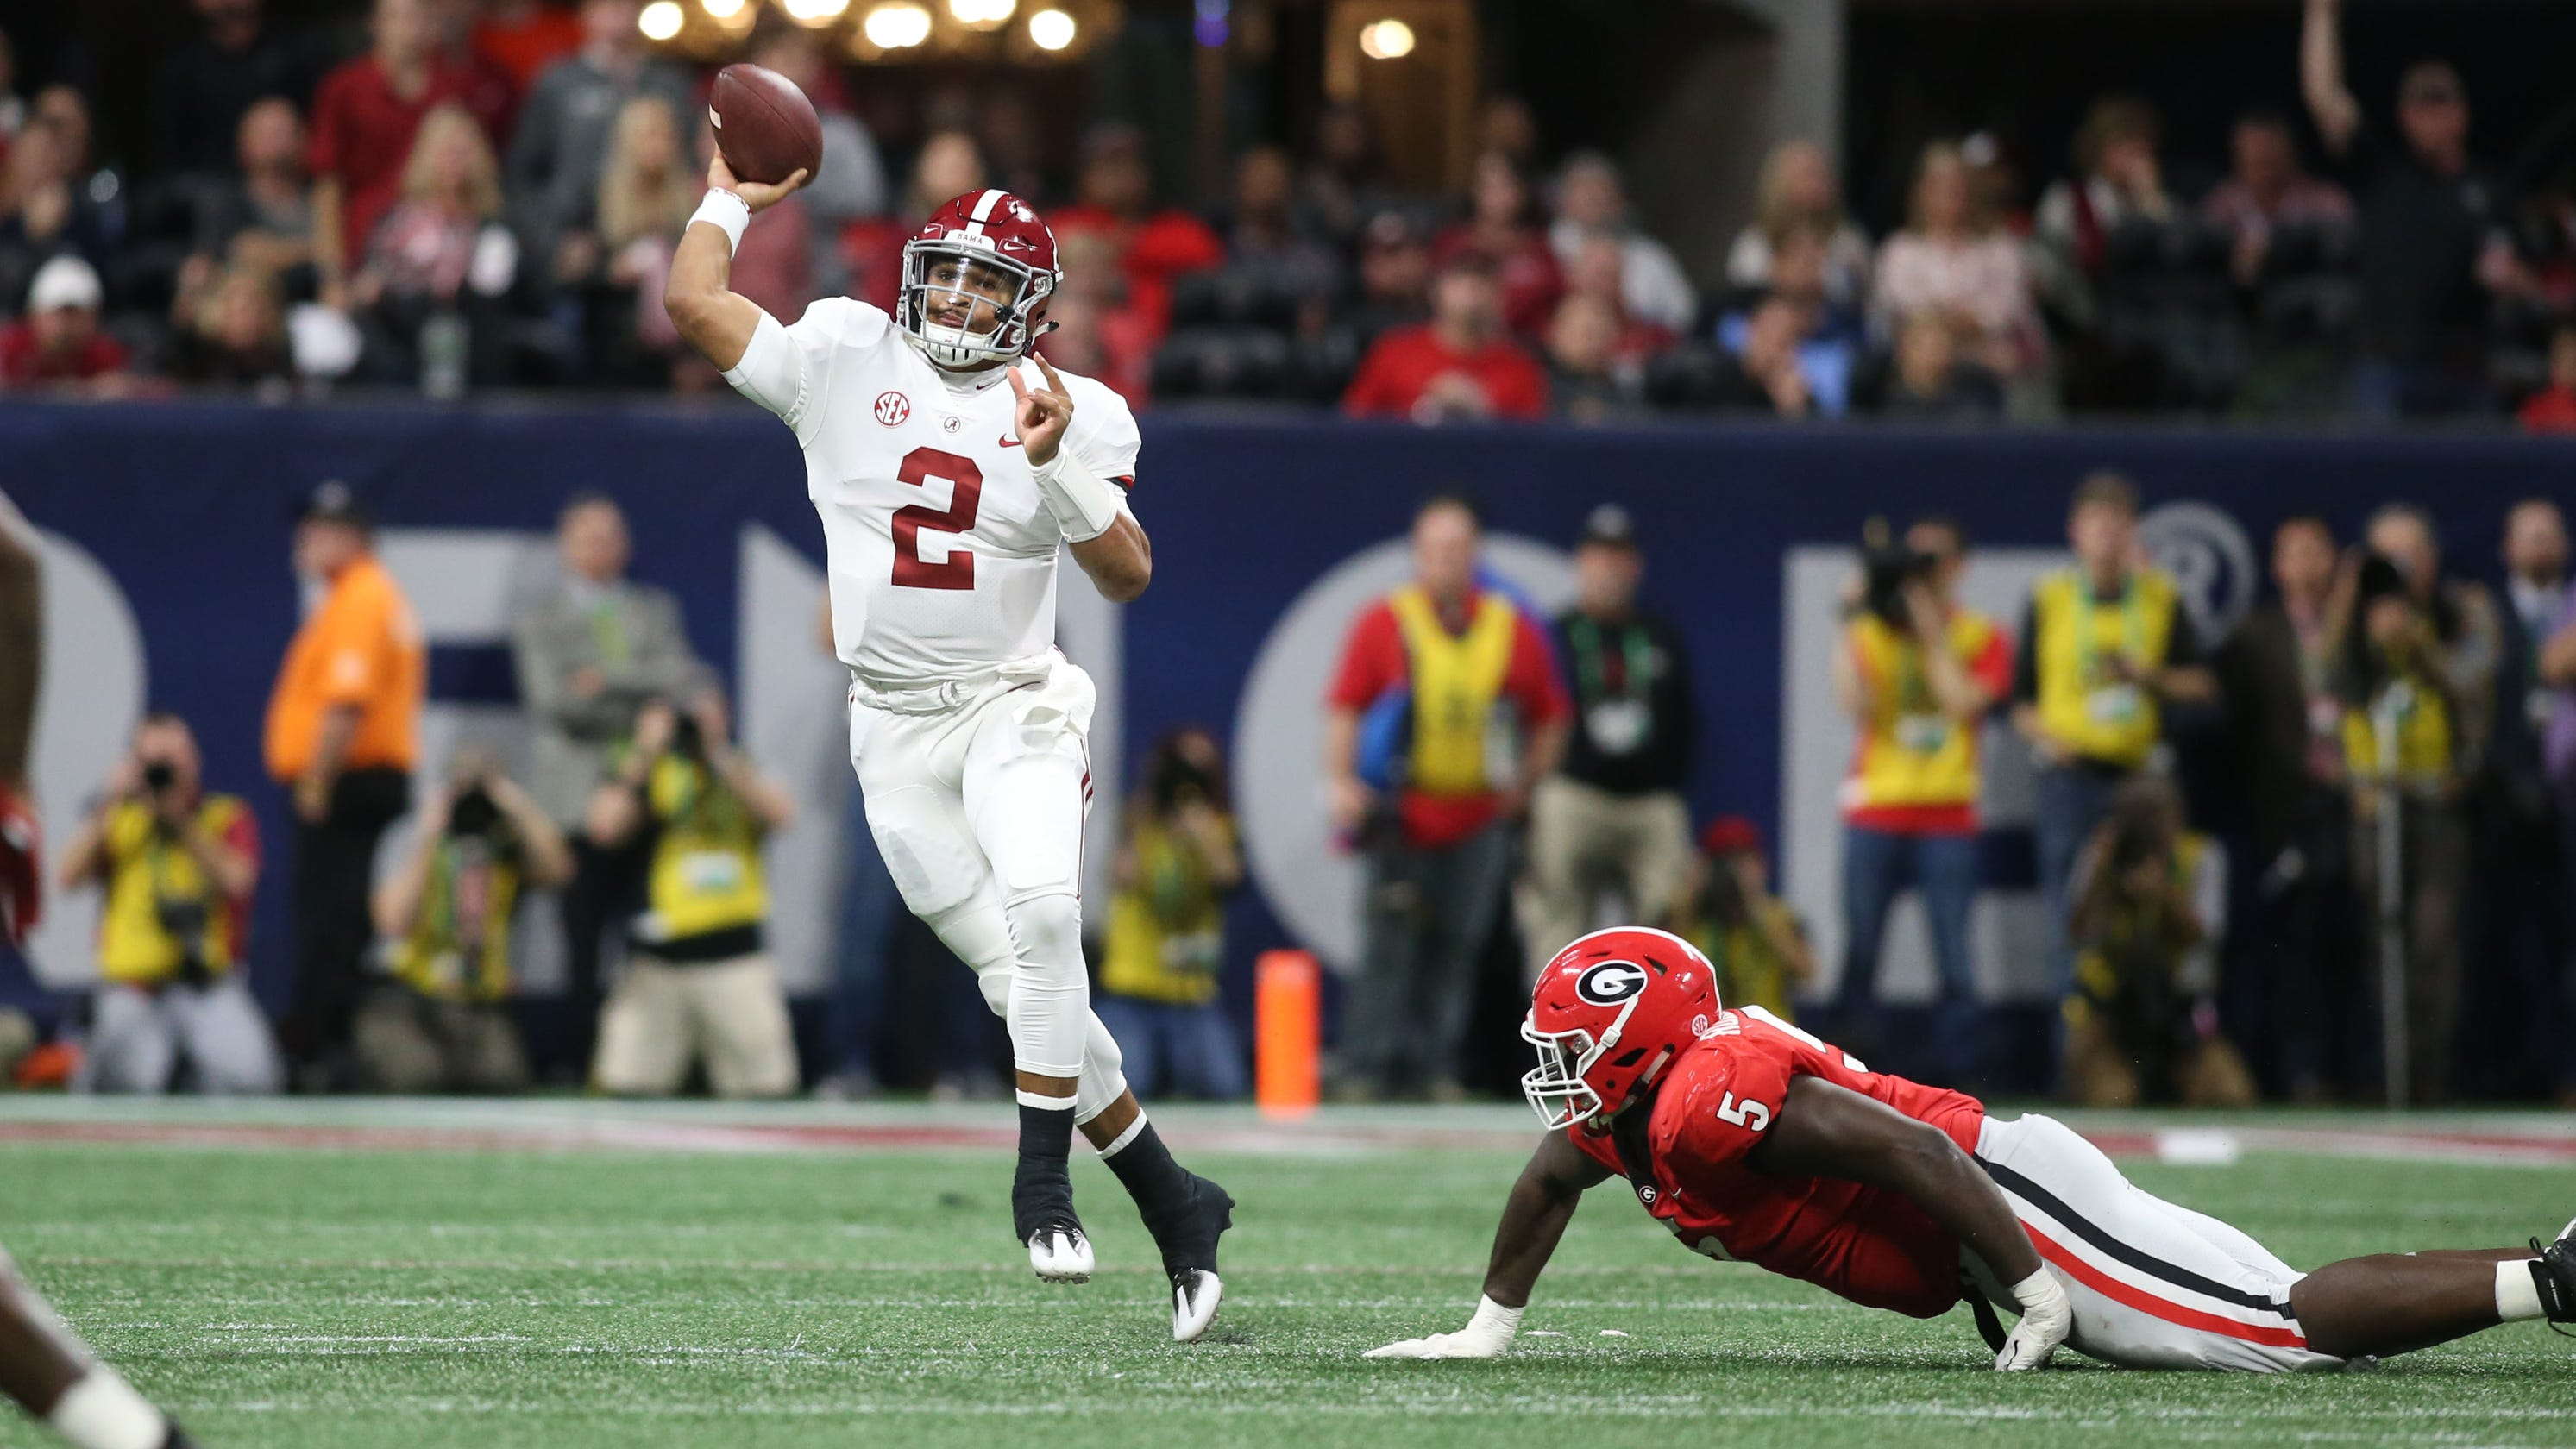 Jalen Hurts plays hero as Alabama stuns Georgia with late rally in SEC  championship game b3fcc742e